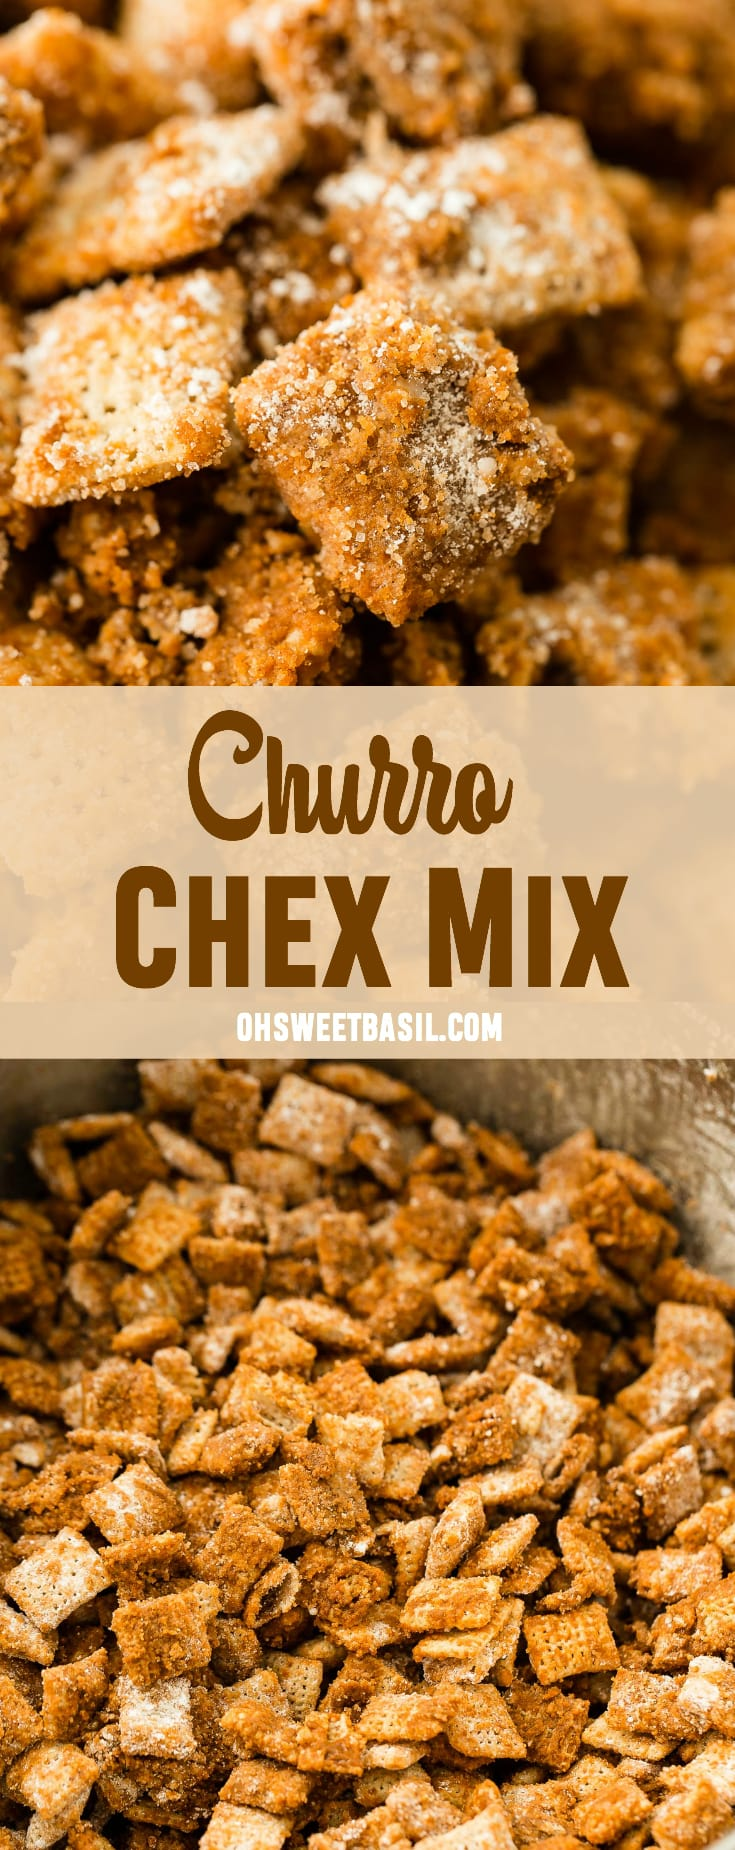 Churro Chex Mix Video Oh Sweet Basil